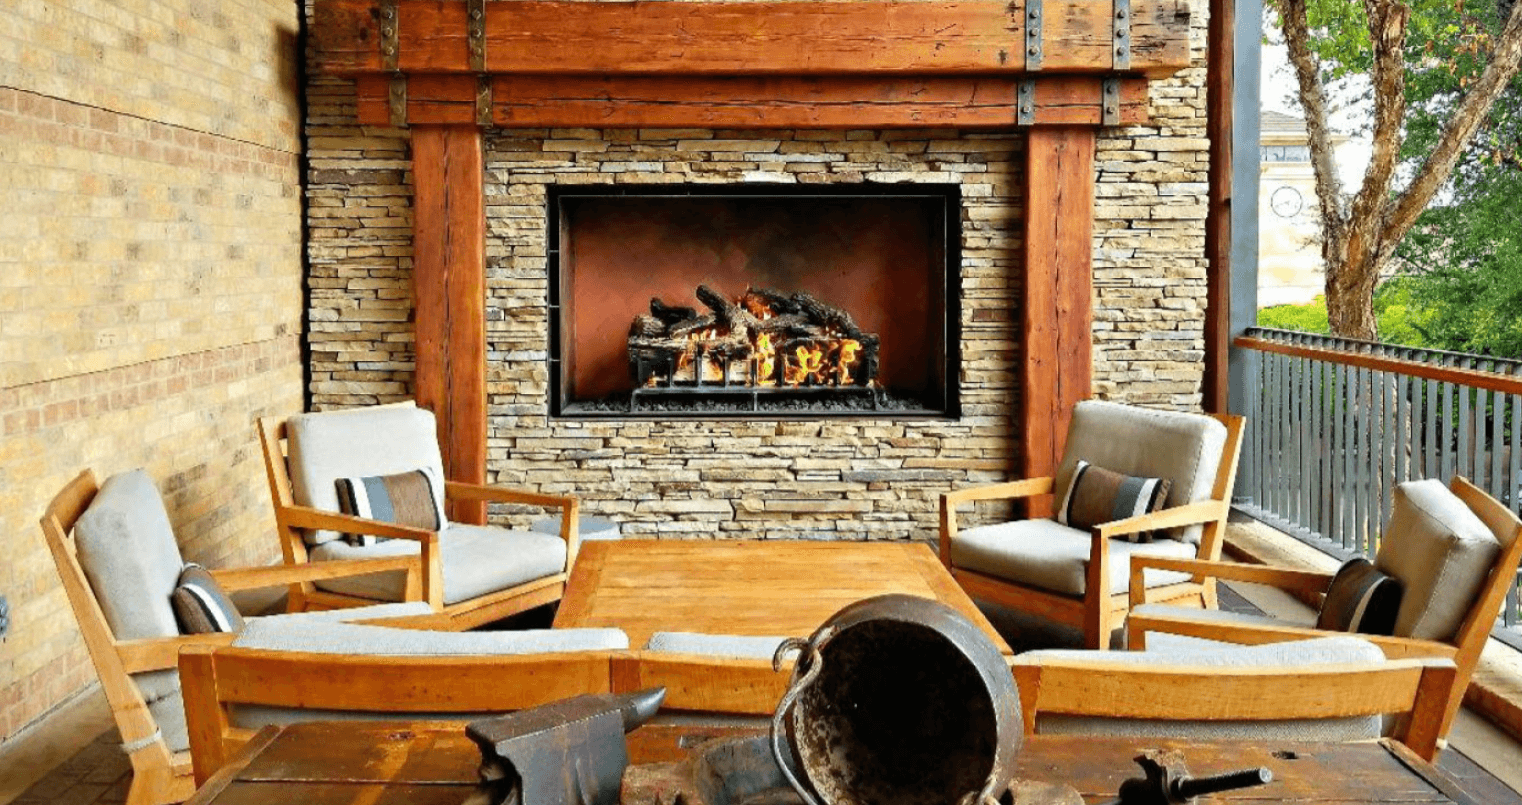 Gas fireplace outdoors with stonework surrounding the fire